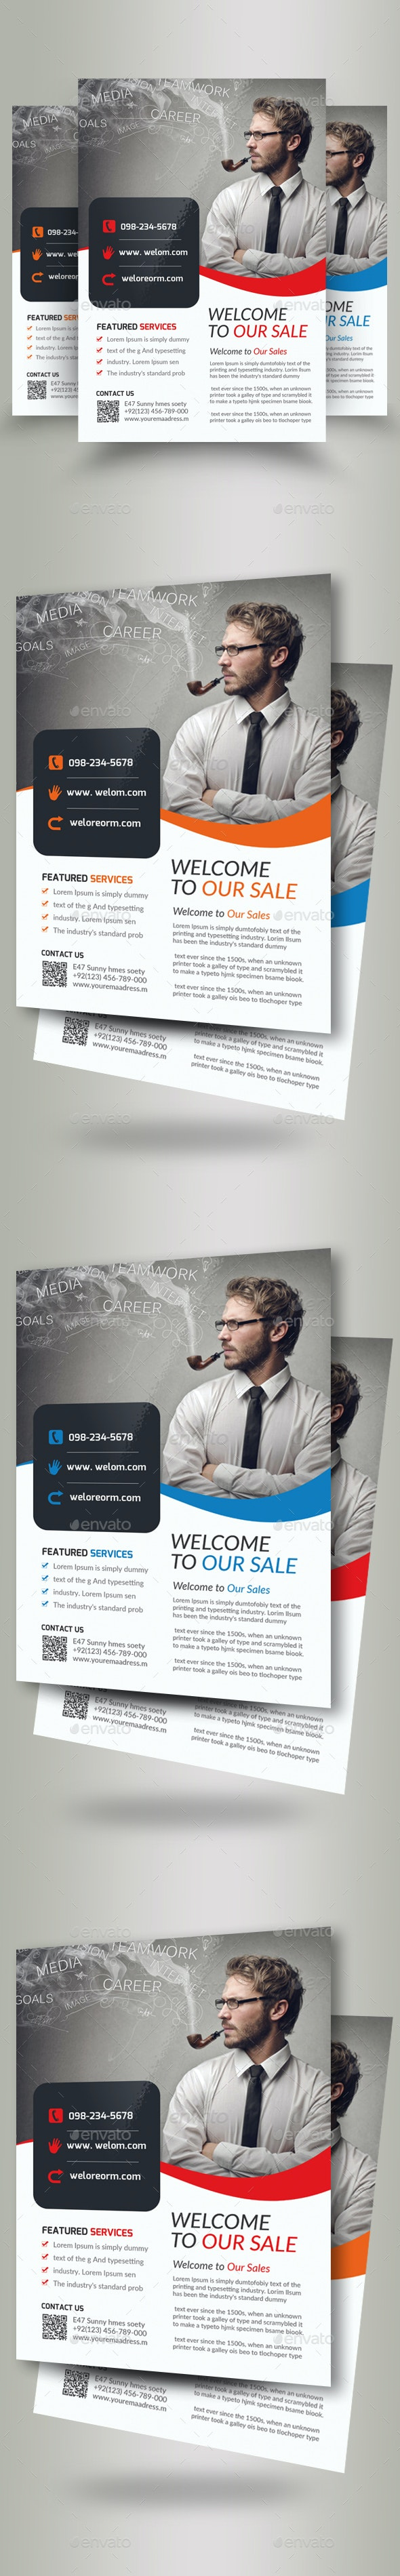 Business Analyst Flyer Template - Corporate Flyers